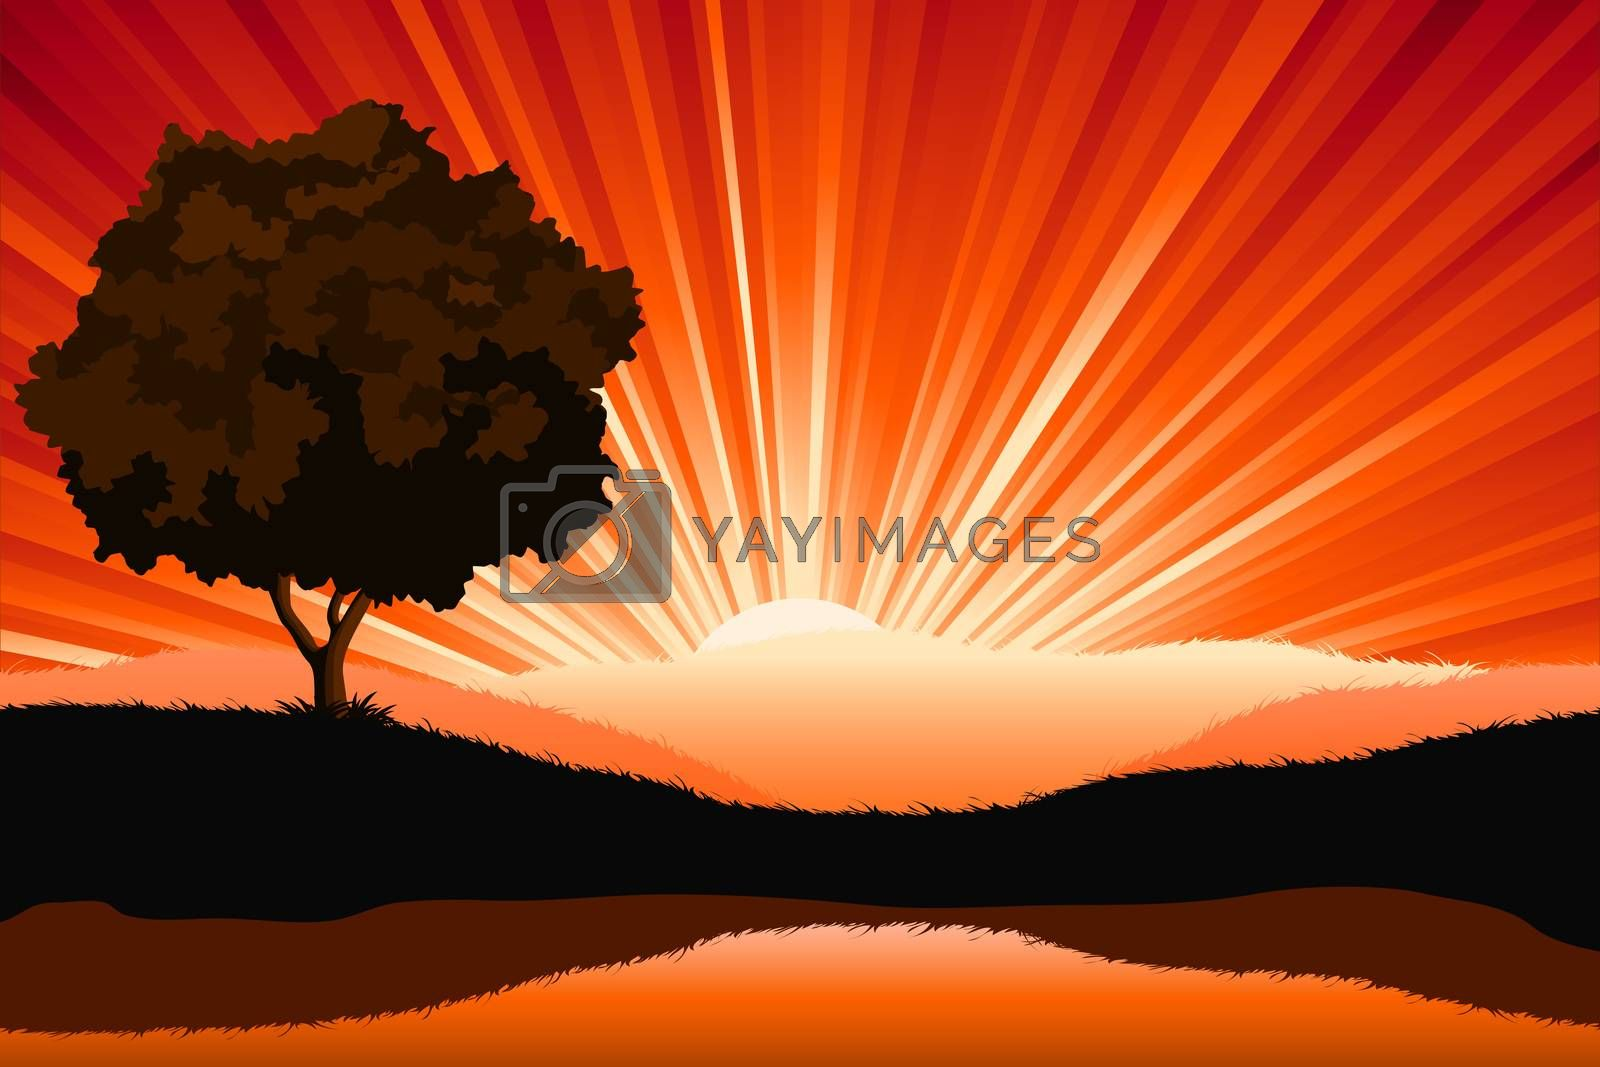 Amazing natural sunrise landscape with tree silhouette, vector i by WaD